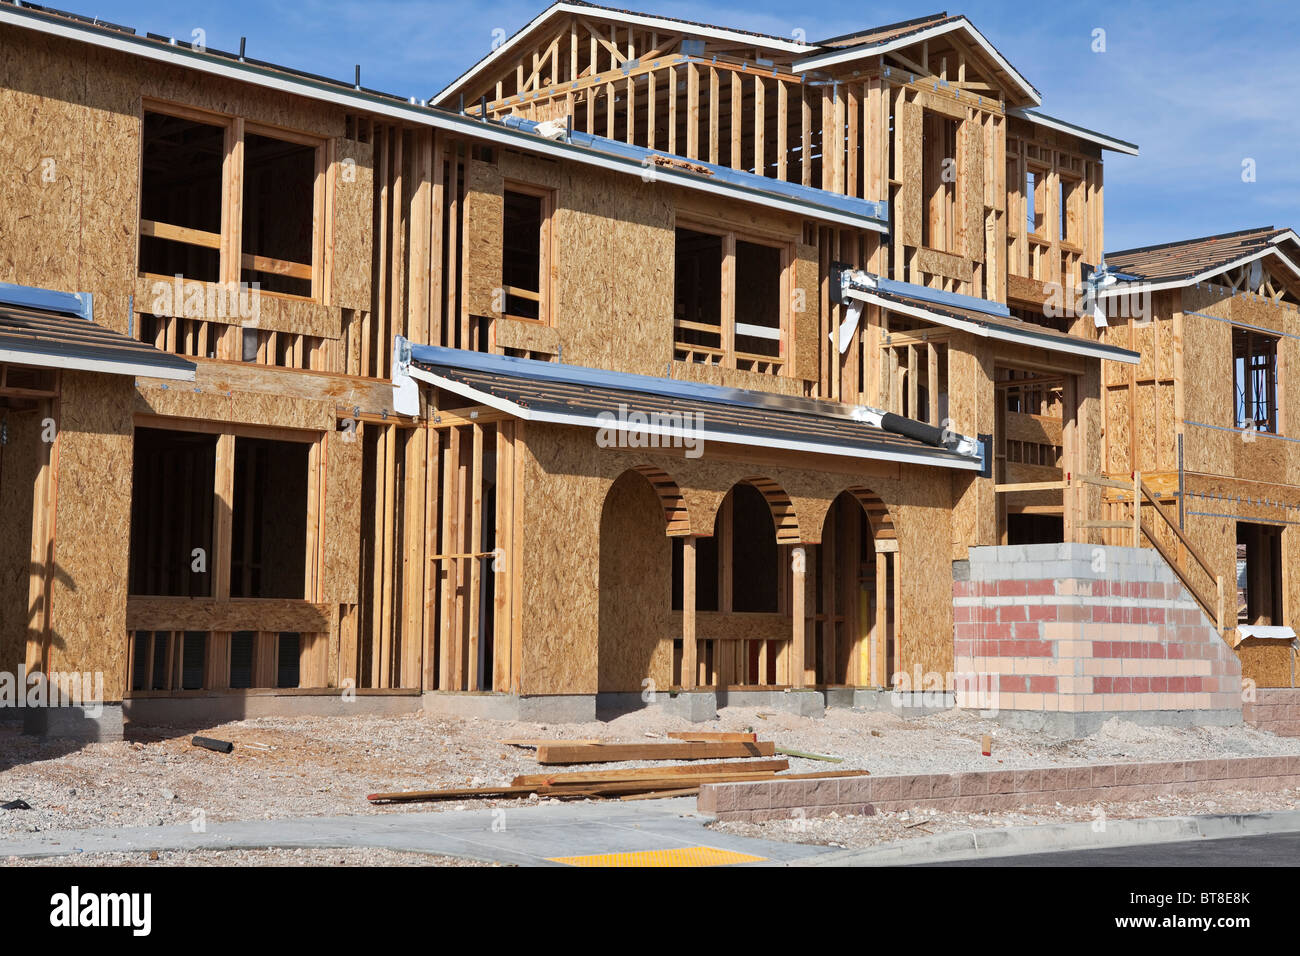 Solidly built modern home construction in the Western United States. - Stock Image